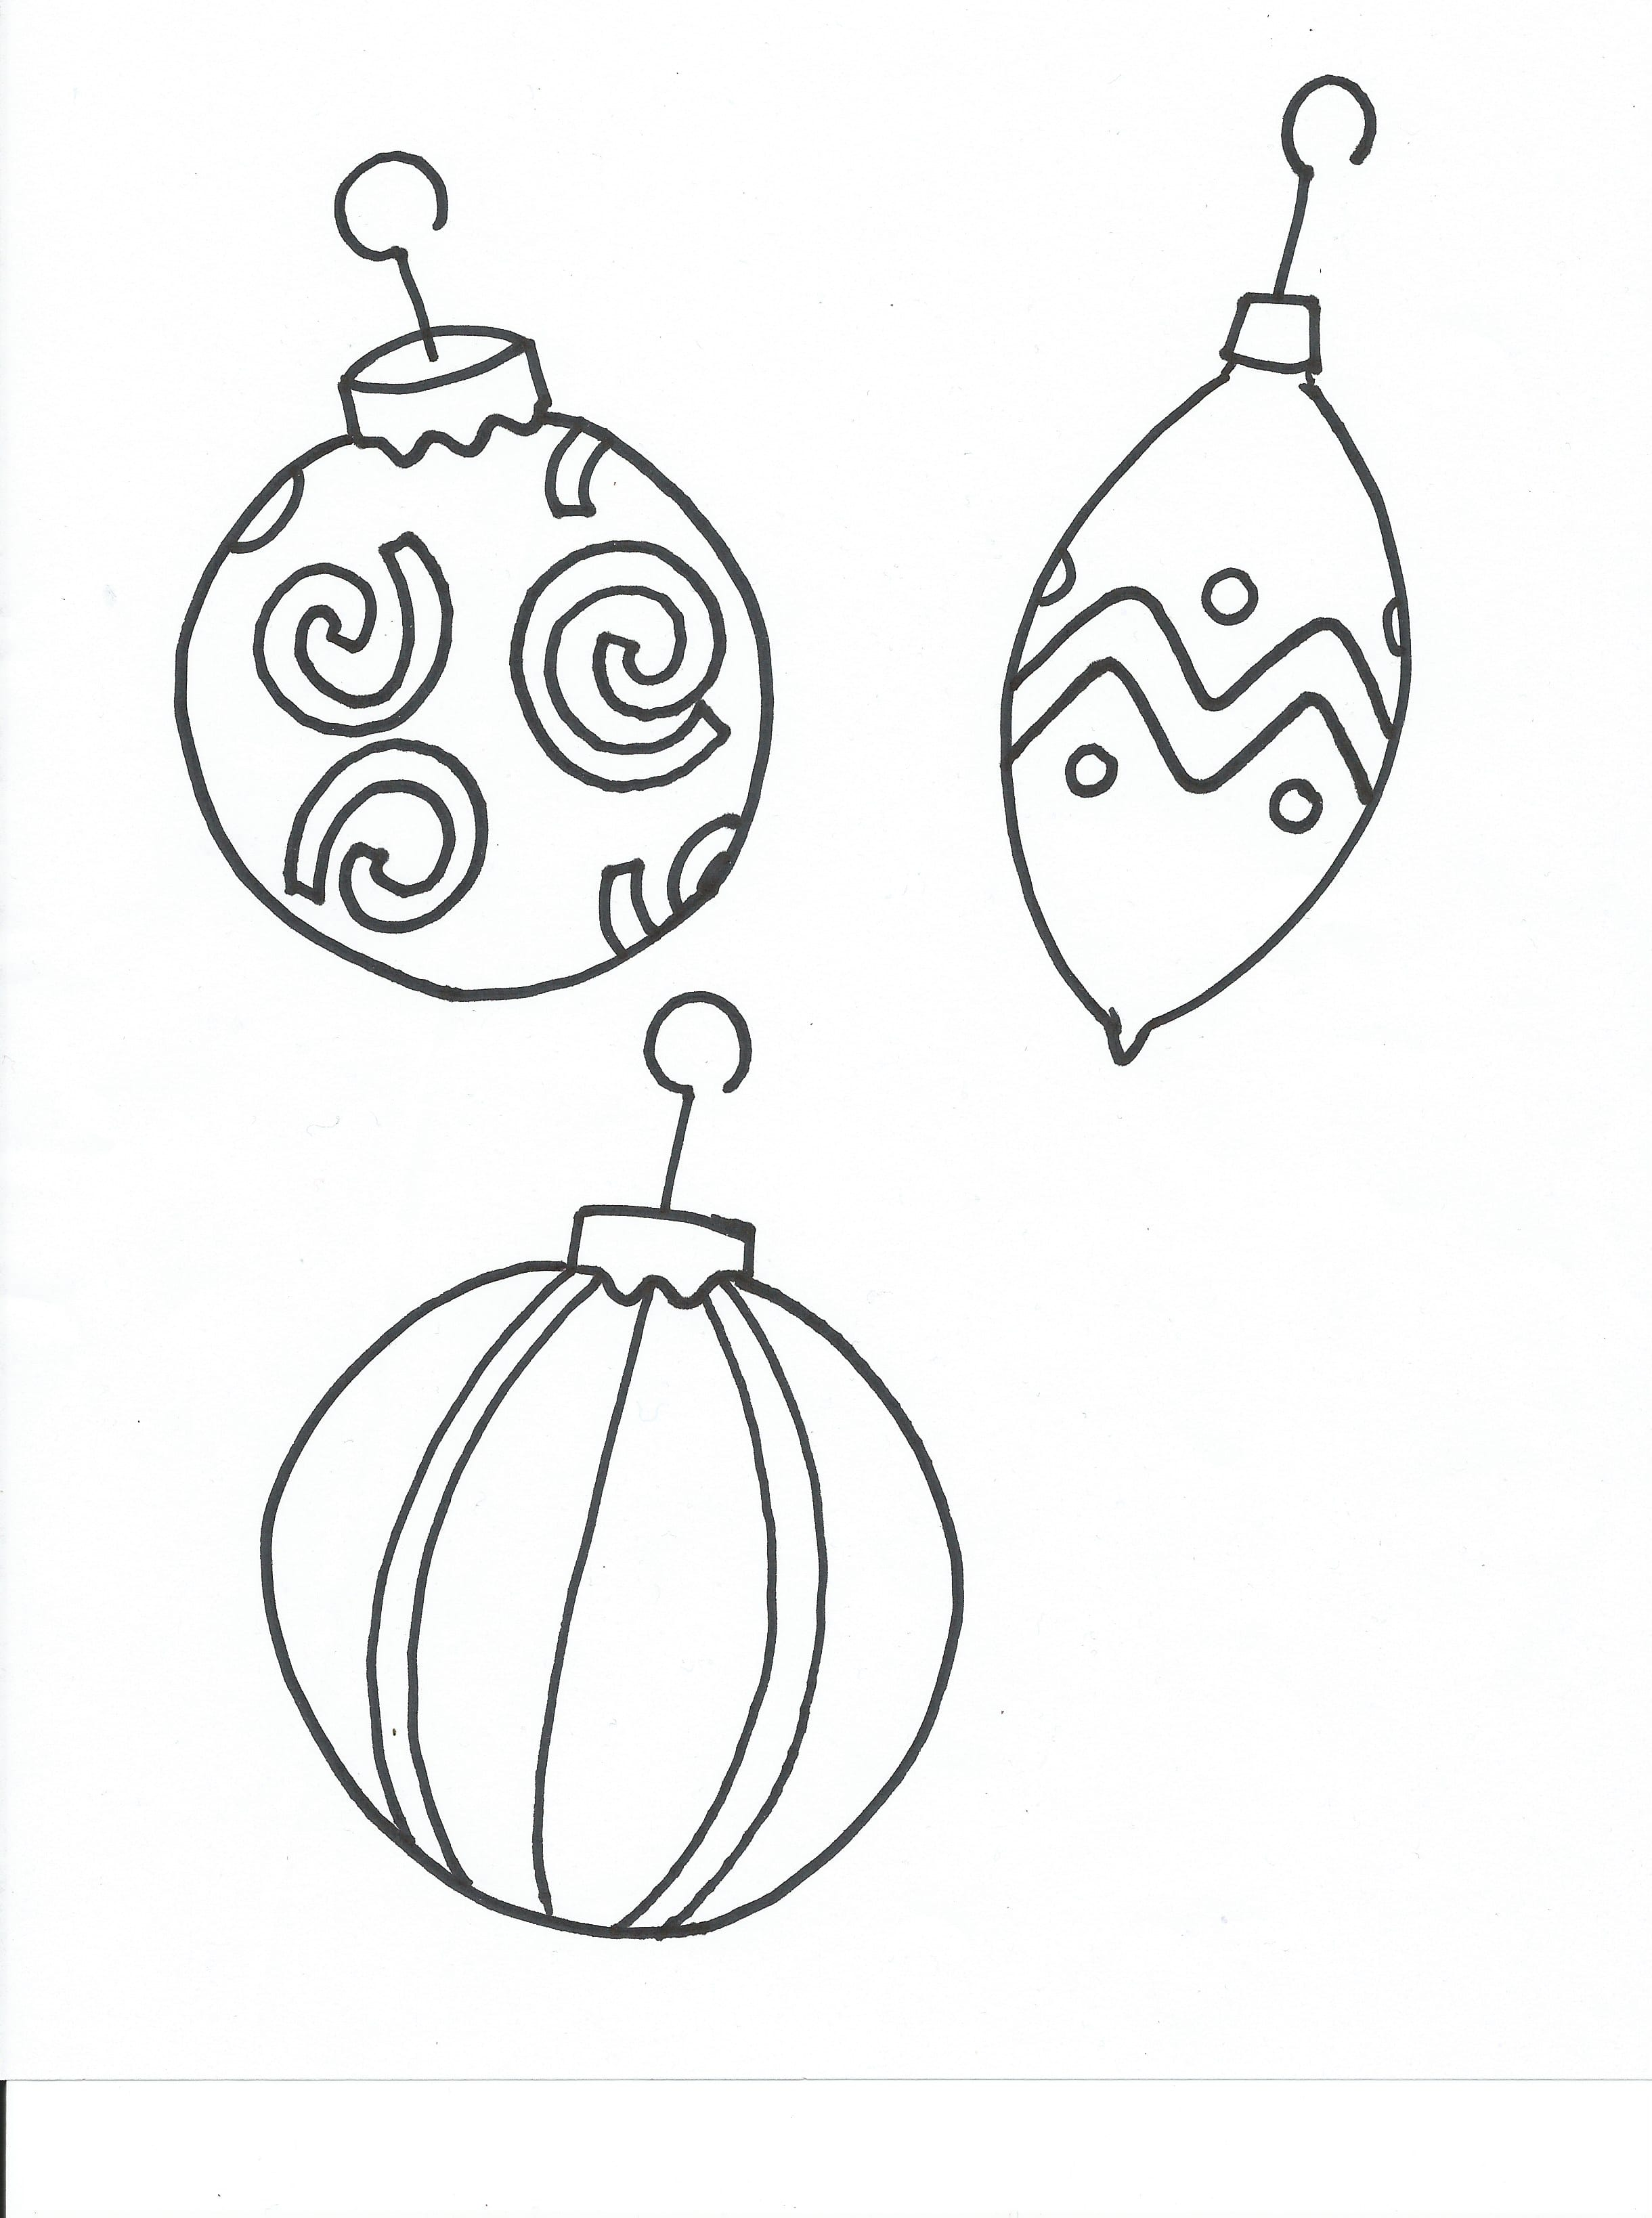 Printable Coloring Pages - Free Samples & Free Stuff